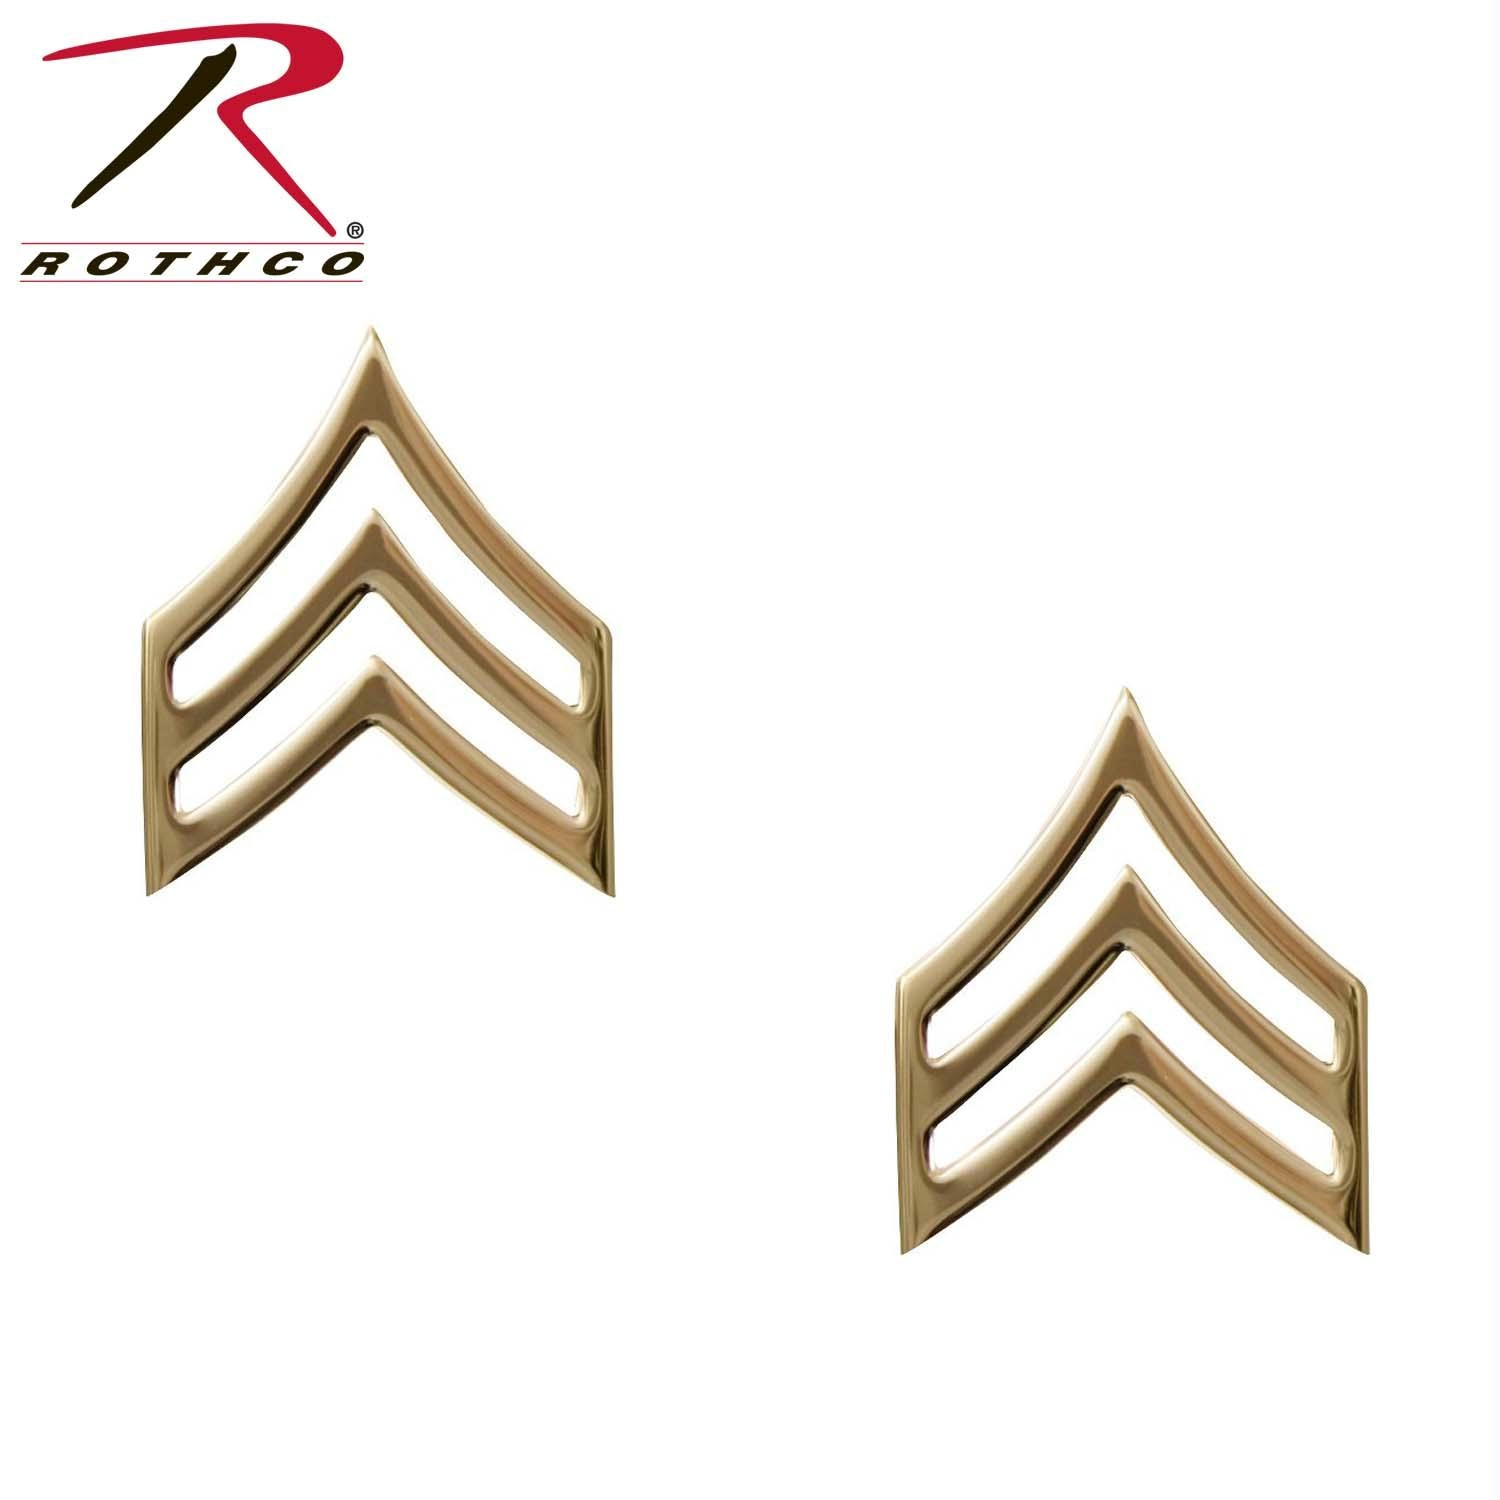 Rothco Sergeant Polished Insignia - Gold